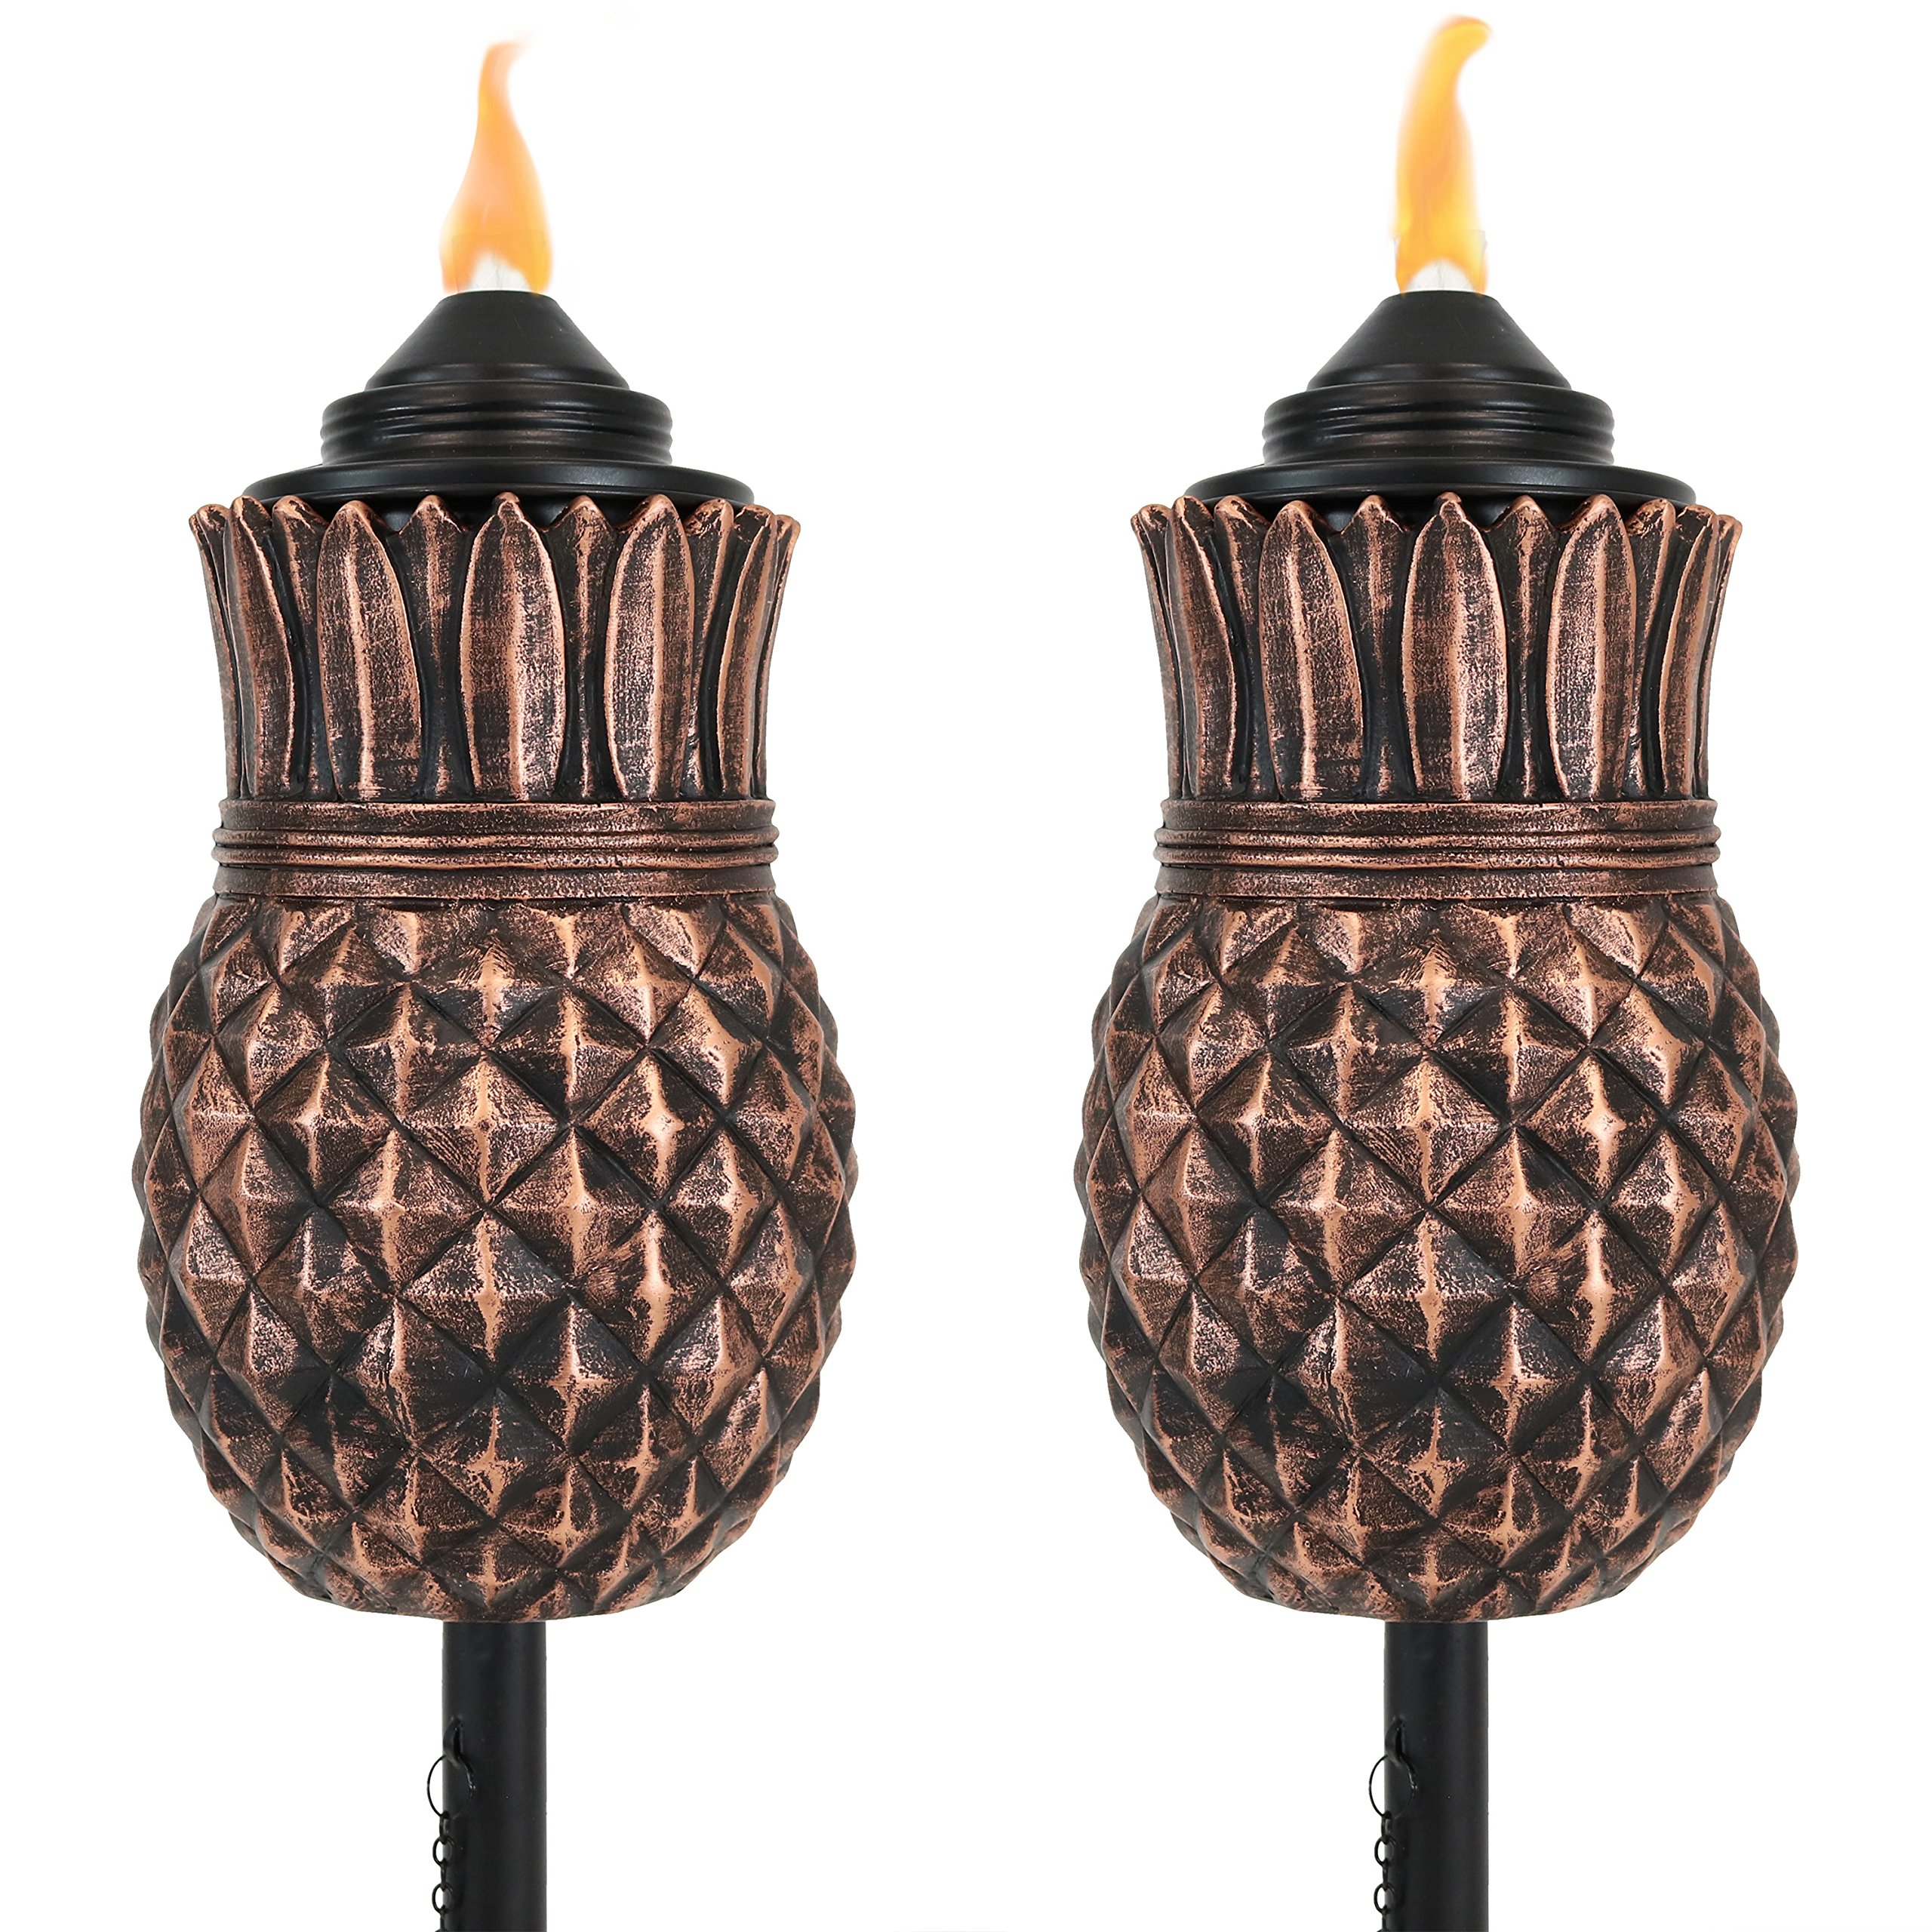 Sunnydaze Pineapple Torch, Outdoor Patio and Lawn Citronella Torches, 23- to 65-Inch Adjustable Height, 3-in-1, Set of 2